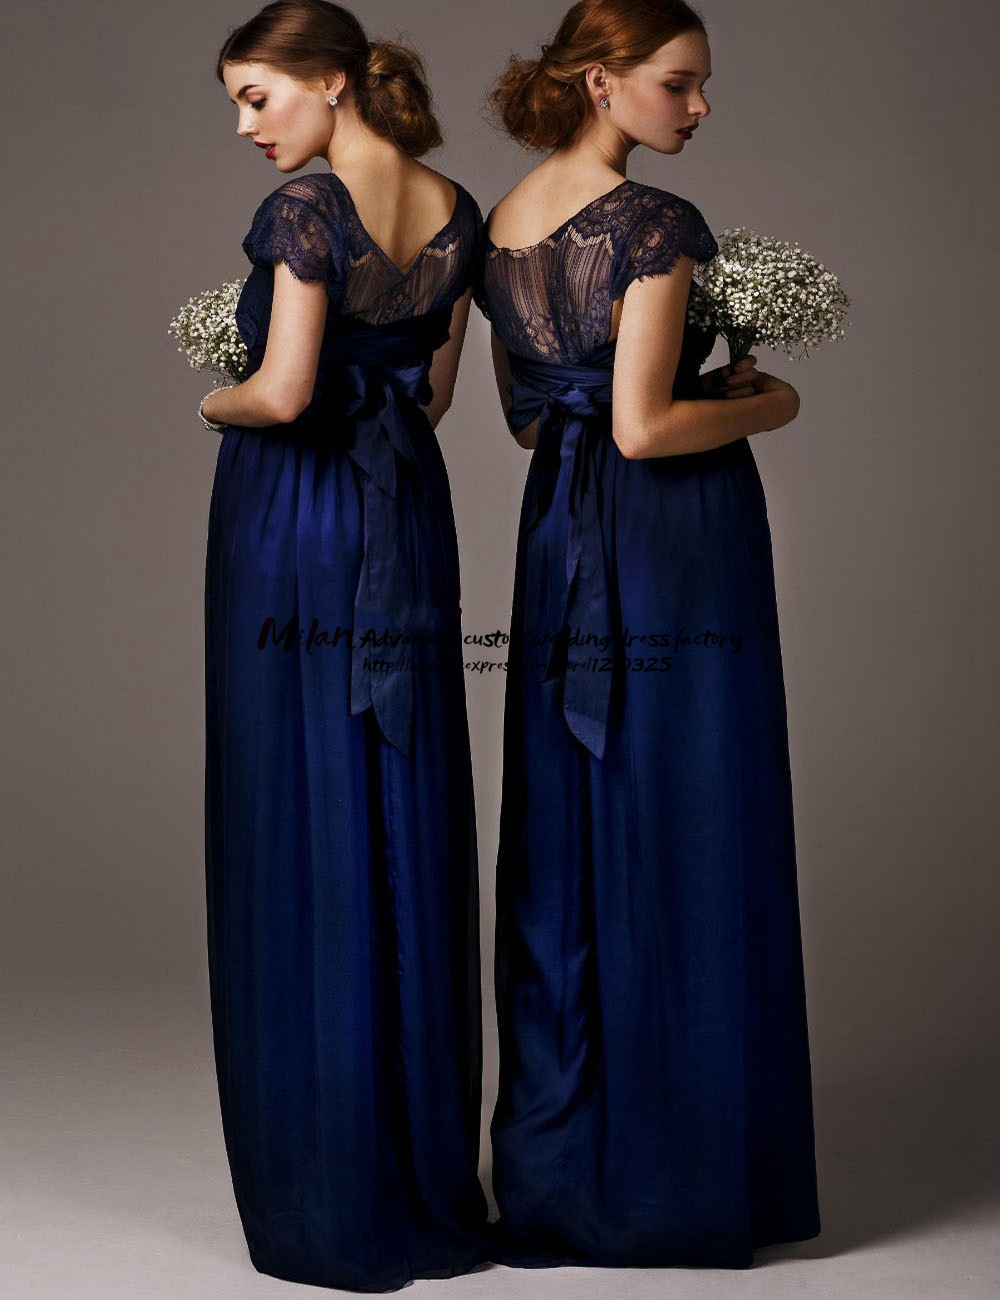 Aliexpress buy robe demoiselle dhonneur 2017 new lacecap aliexpress buy robe demoiselle dhonneur 2017 new lacecap sleeves a line navy blue bridesmaid dresses long cheap bohemian bridesmaid dress from ombrellifo Choice Image